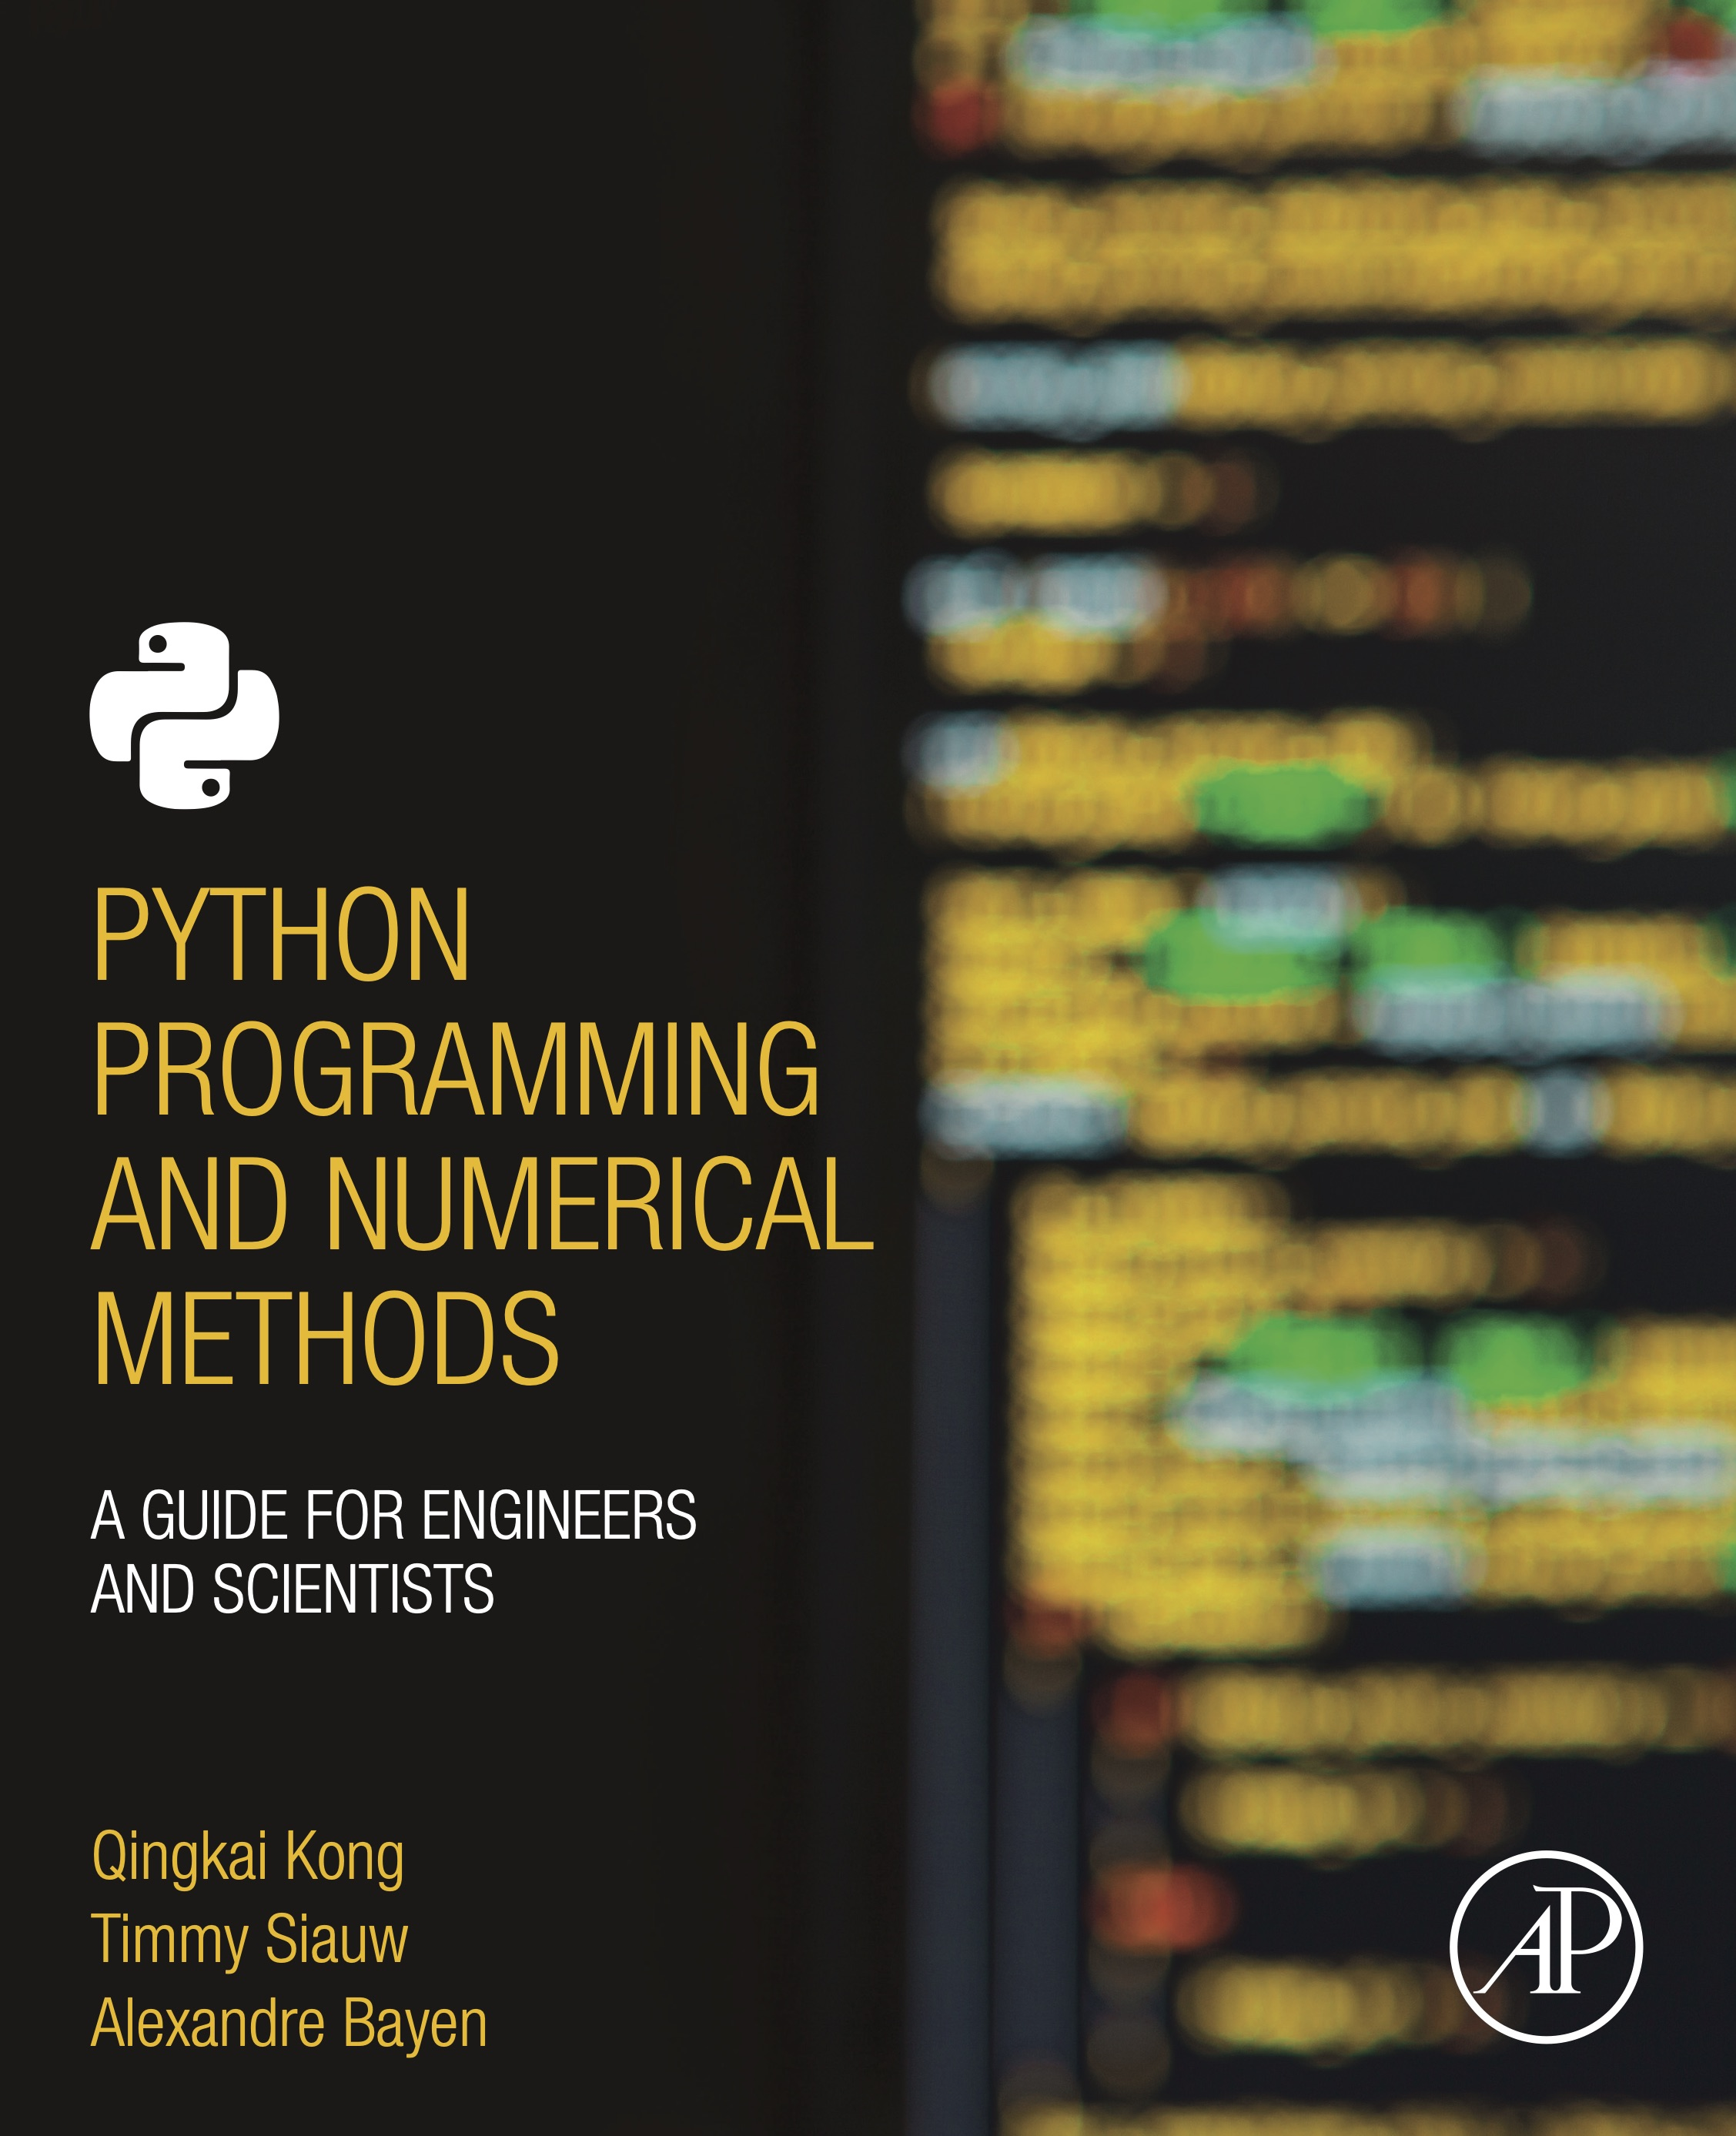 Python Programming And Numerical Methods: A Guide For Engineers And Scientists